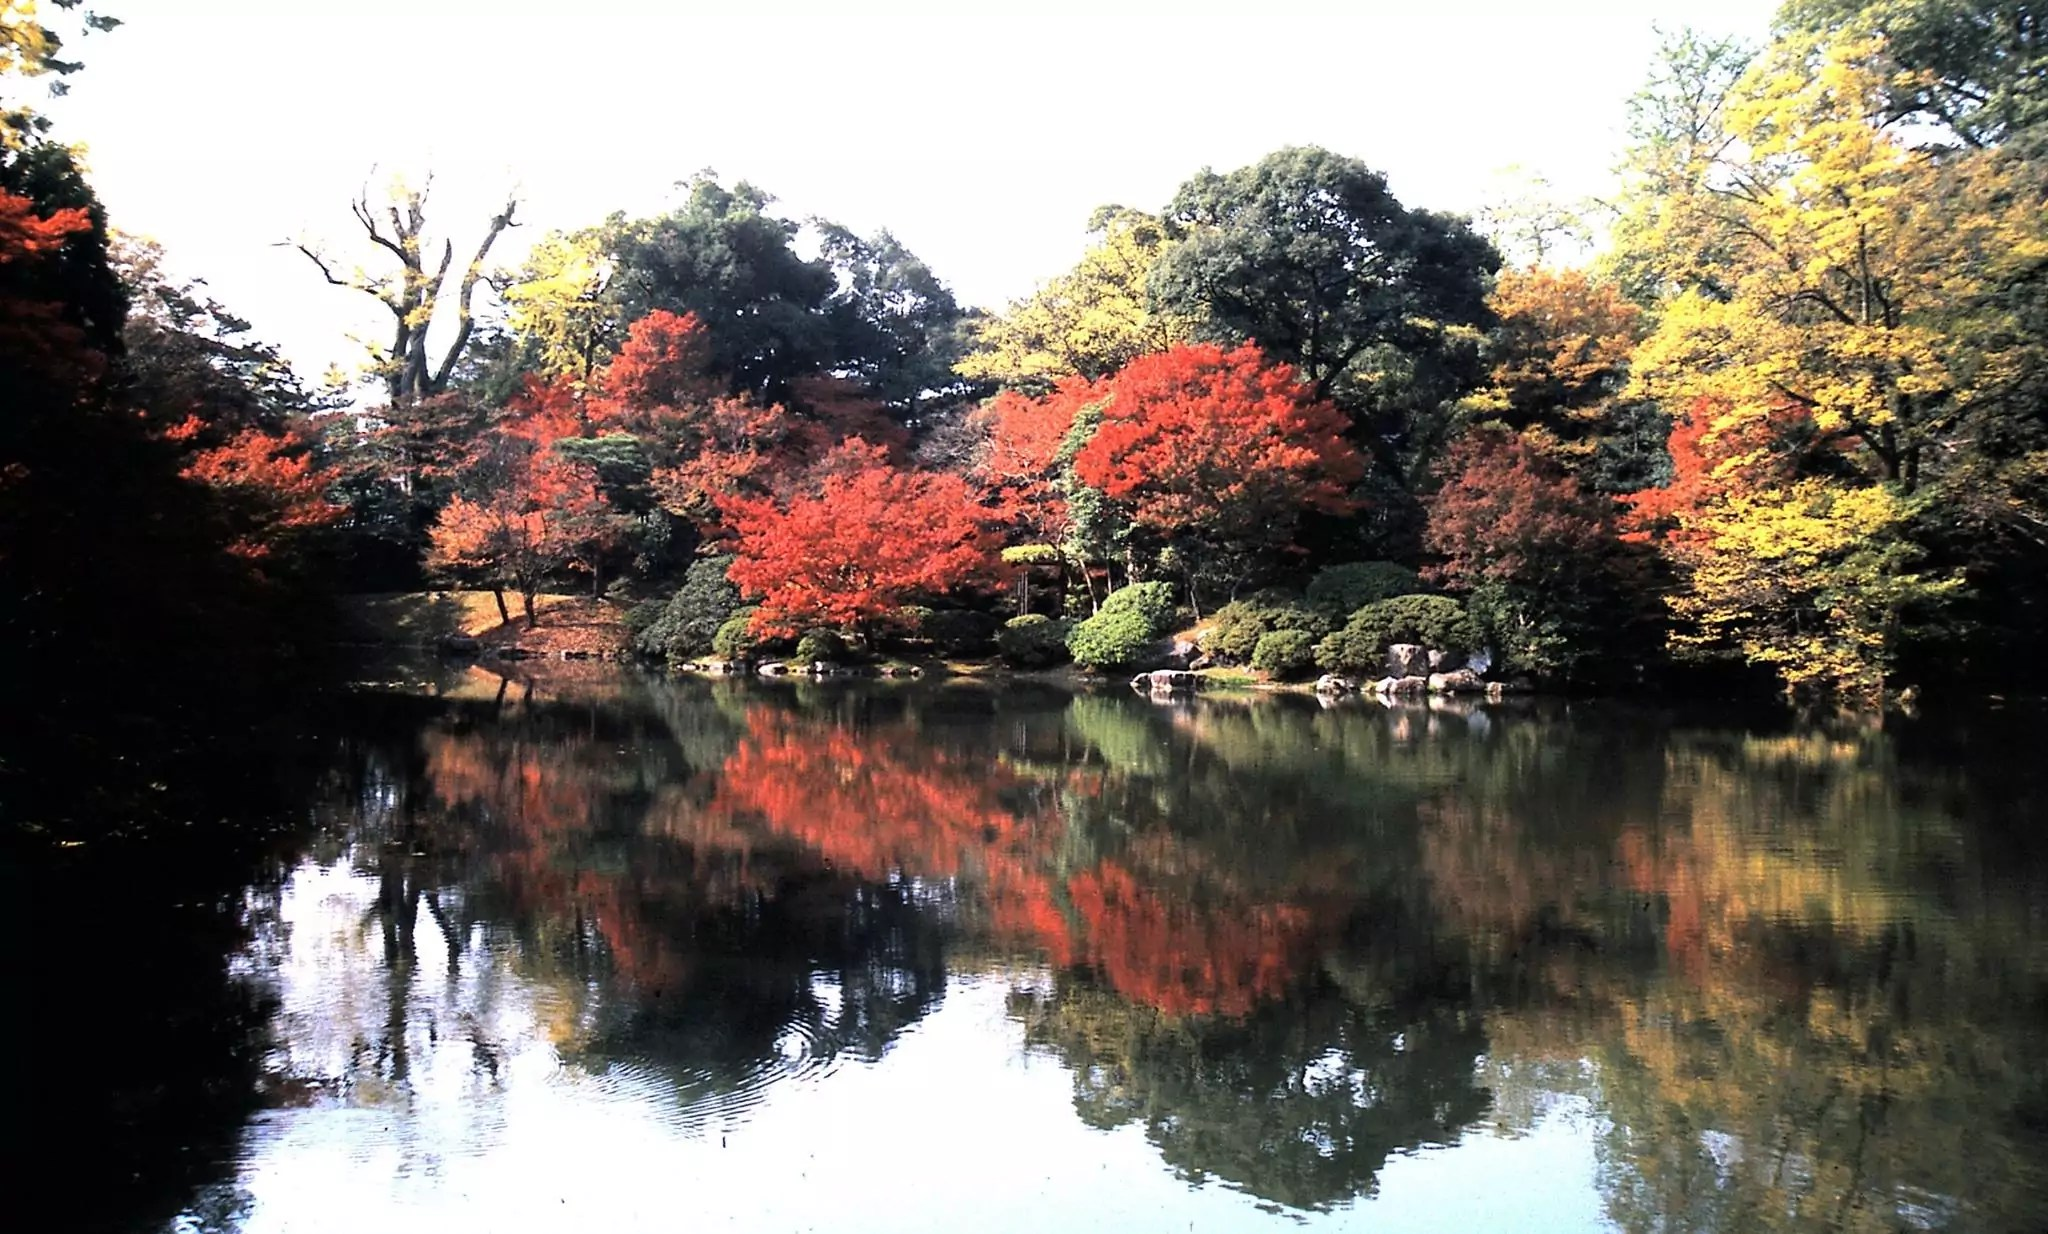 KYOTO BEAUTIFUL LANDSCAPE IN THE FALL